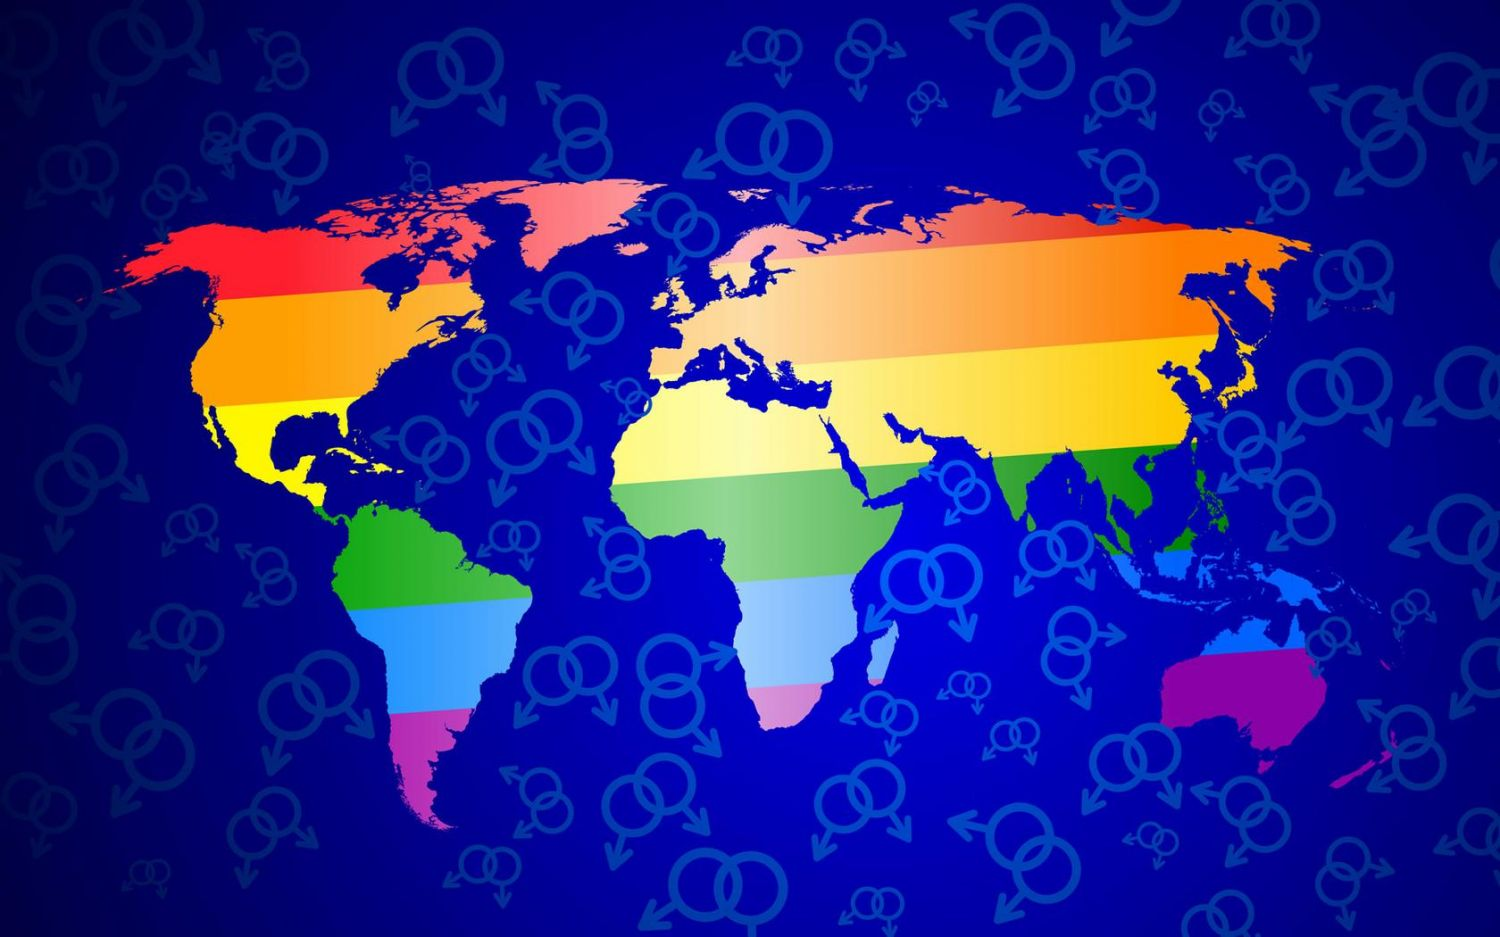 2014 Gay Pride & Events Worldwide — The New GayTravel.com!: www.gaytravel.com/gay-events/2014-pride-events-worldwide